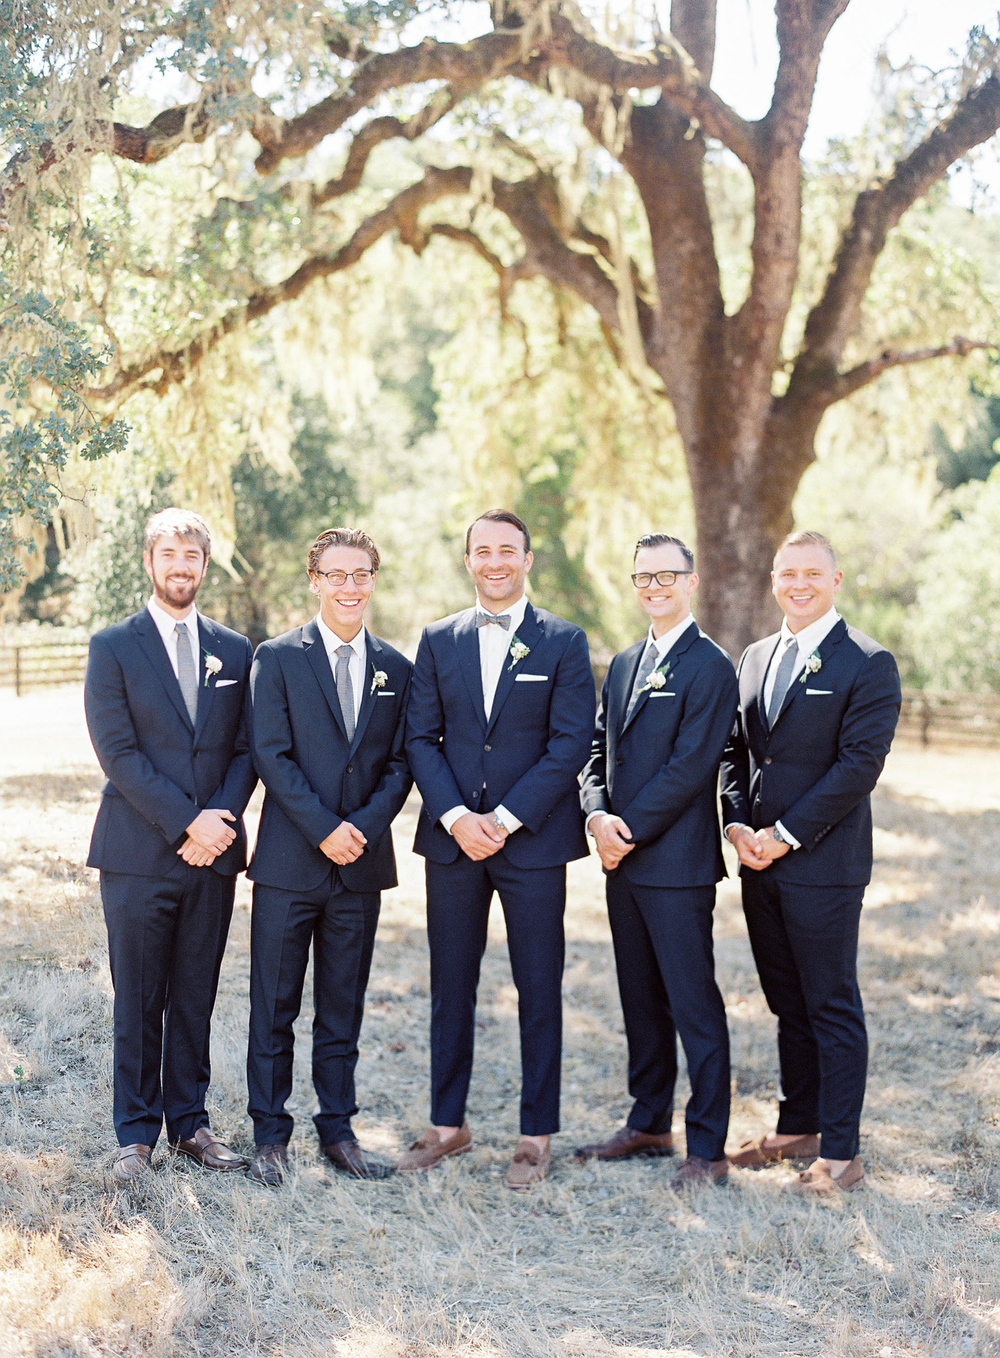 Meghan Mehan Photography - Fine Art Film Wedding Photography - San Francisco | Napa | Sonoma | Big Sur | Chicago | Minneapolis | Milwaukee | Lake Geneva | Door County | Wisconsin 040.jpg